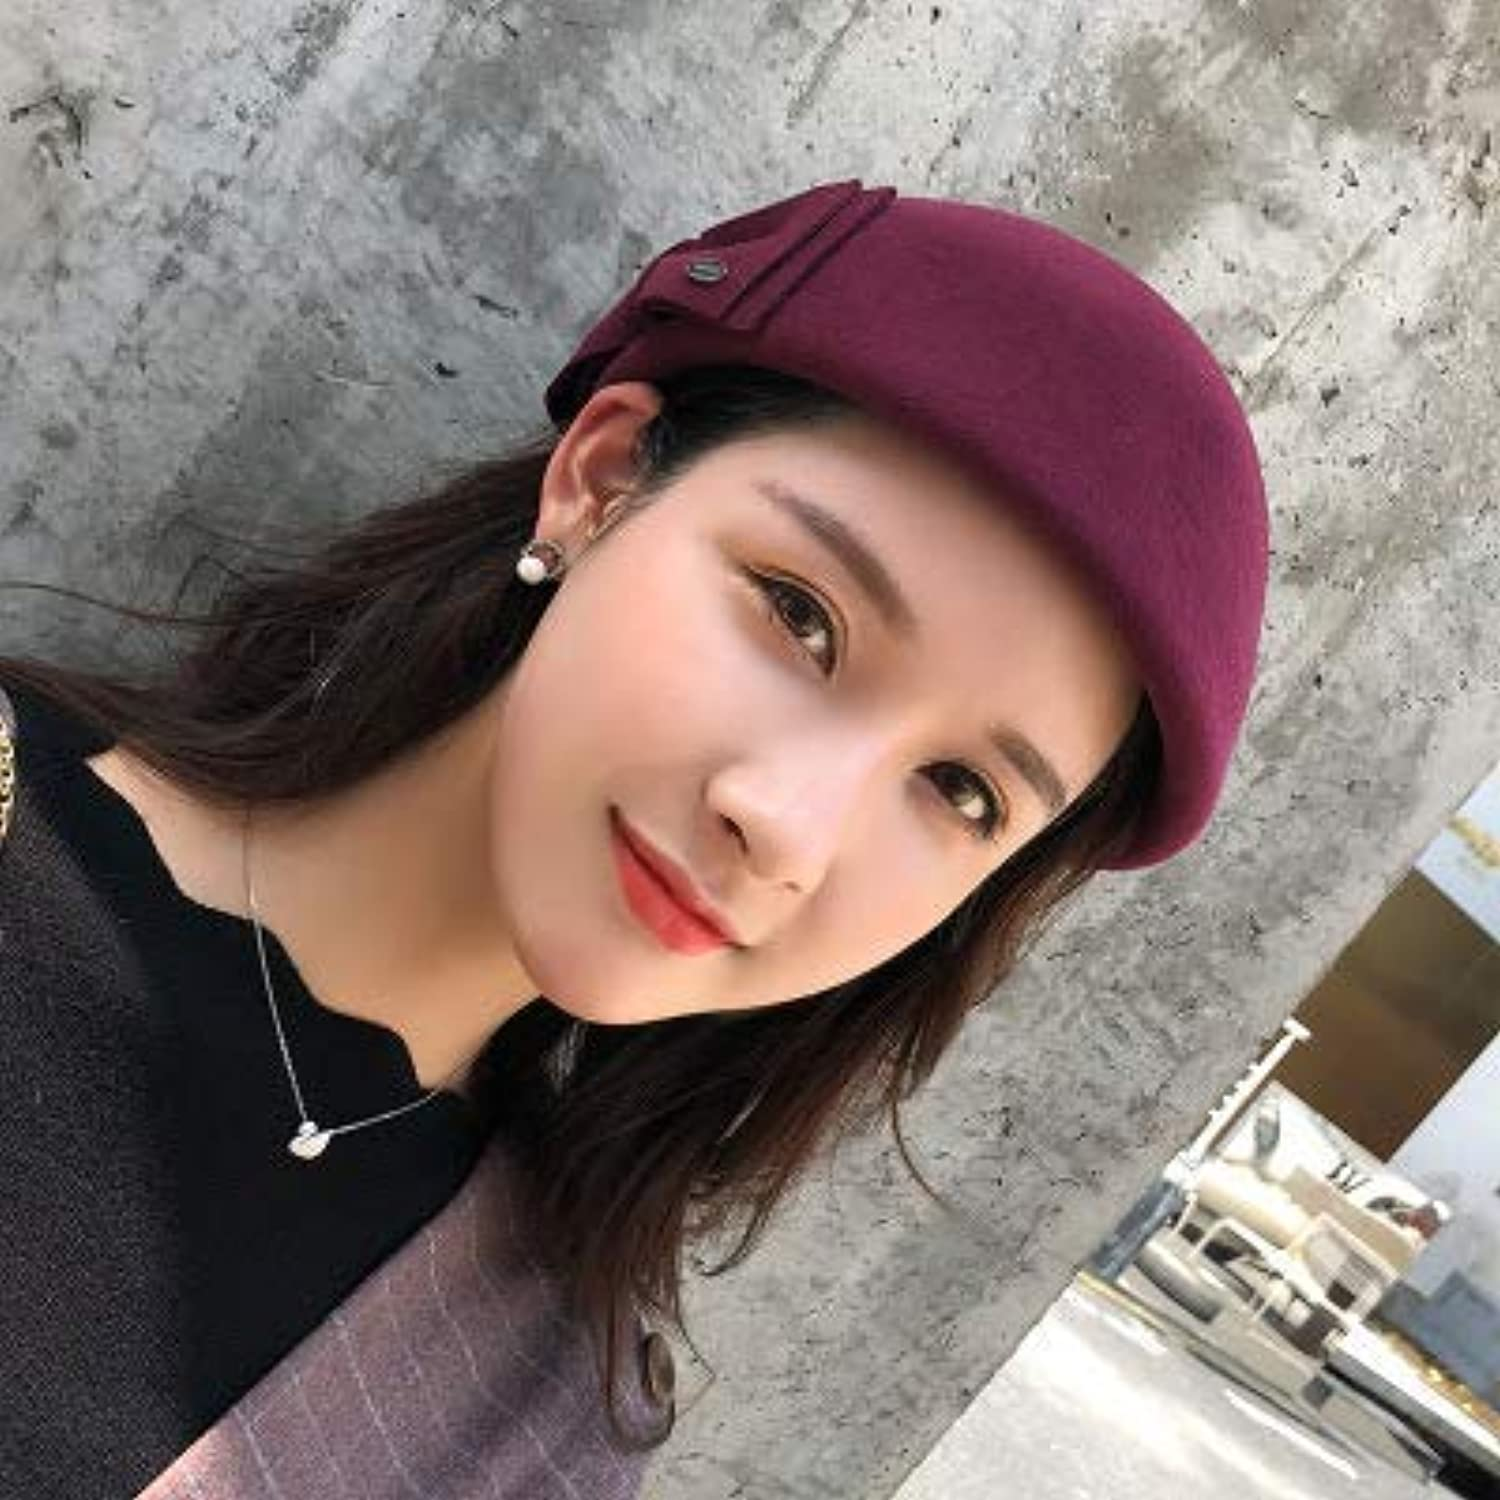 Sports Hat Home Hat Female British Retro hat Autumn and Winter European and American Painter hat Fashion Wool Warm Bow tie Bud Cap (color   Burgundy, Size   M(56-58cm)) Outdoor Cap